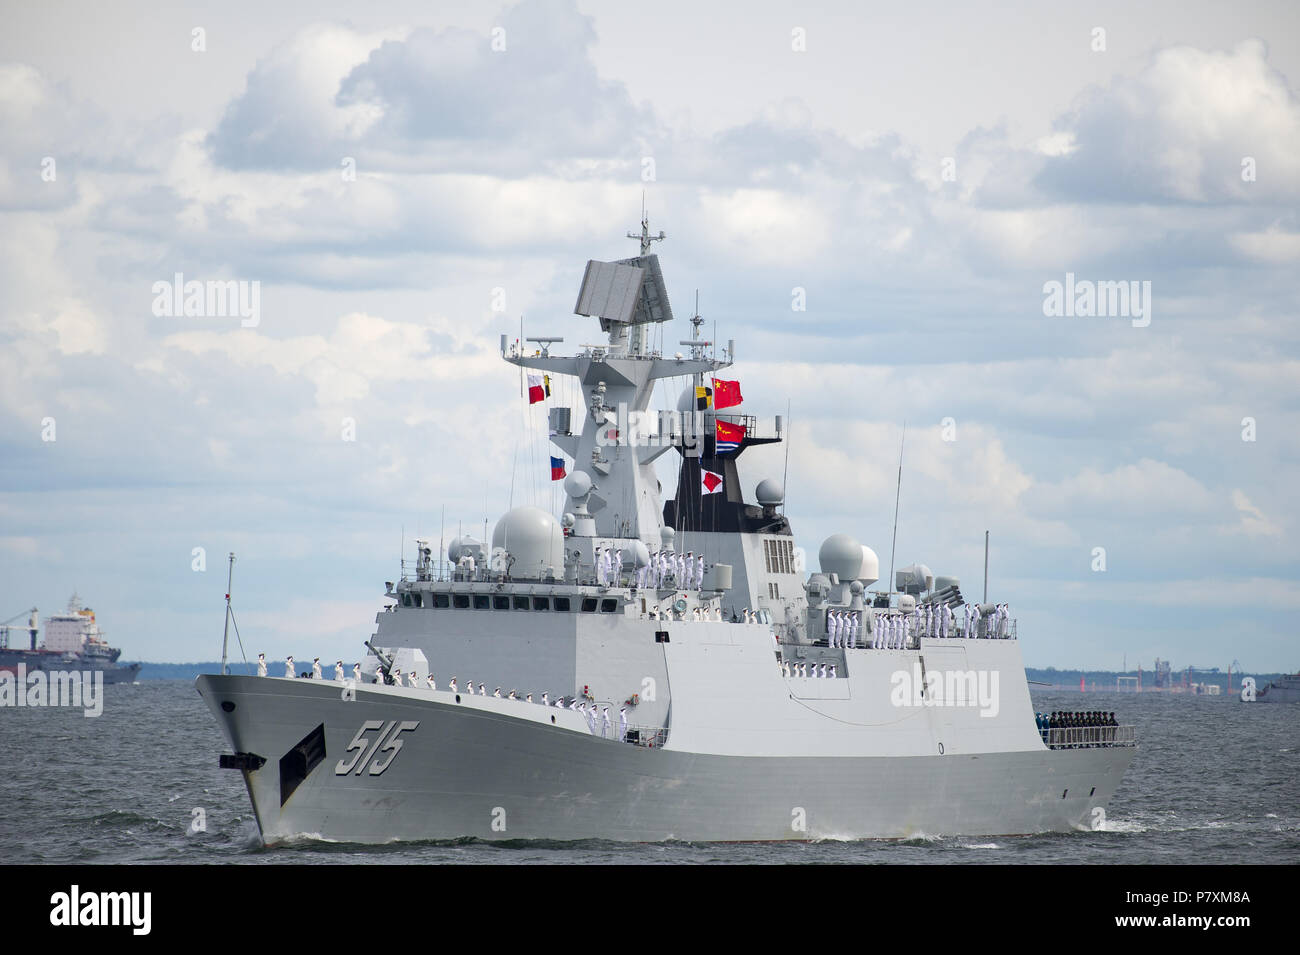 Chinese Type 054A (NATO Jiangkai II) multi-role frigate Binzhou (515) during Naval Parade to celebrate 100th annversary of Polish Navy in Gdynia, Pola - Stock Image